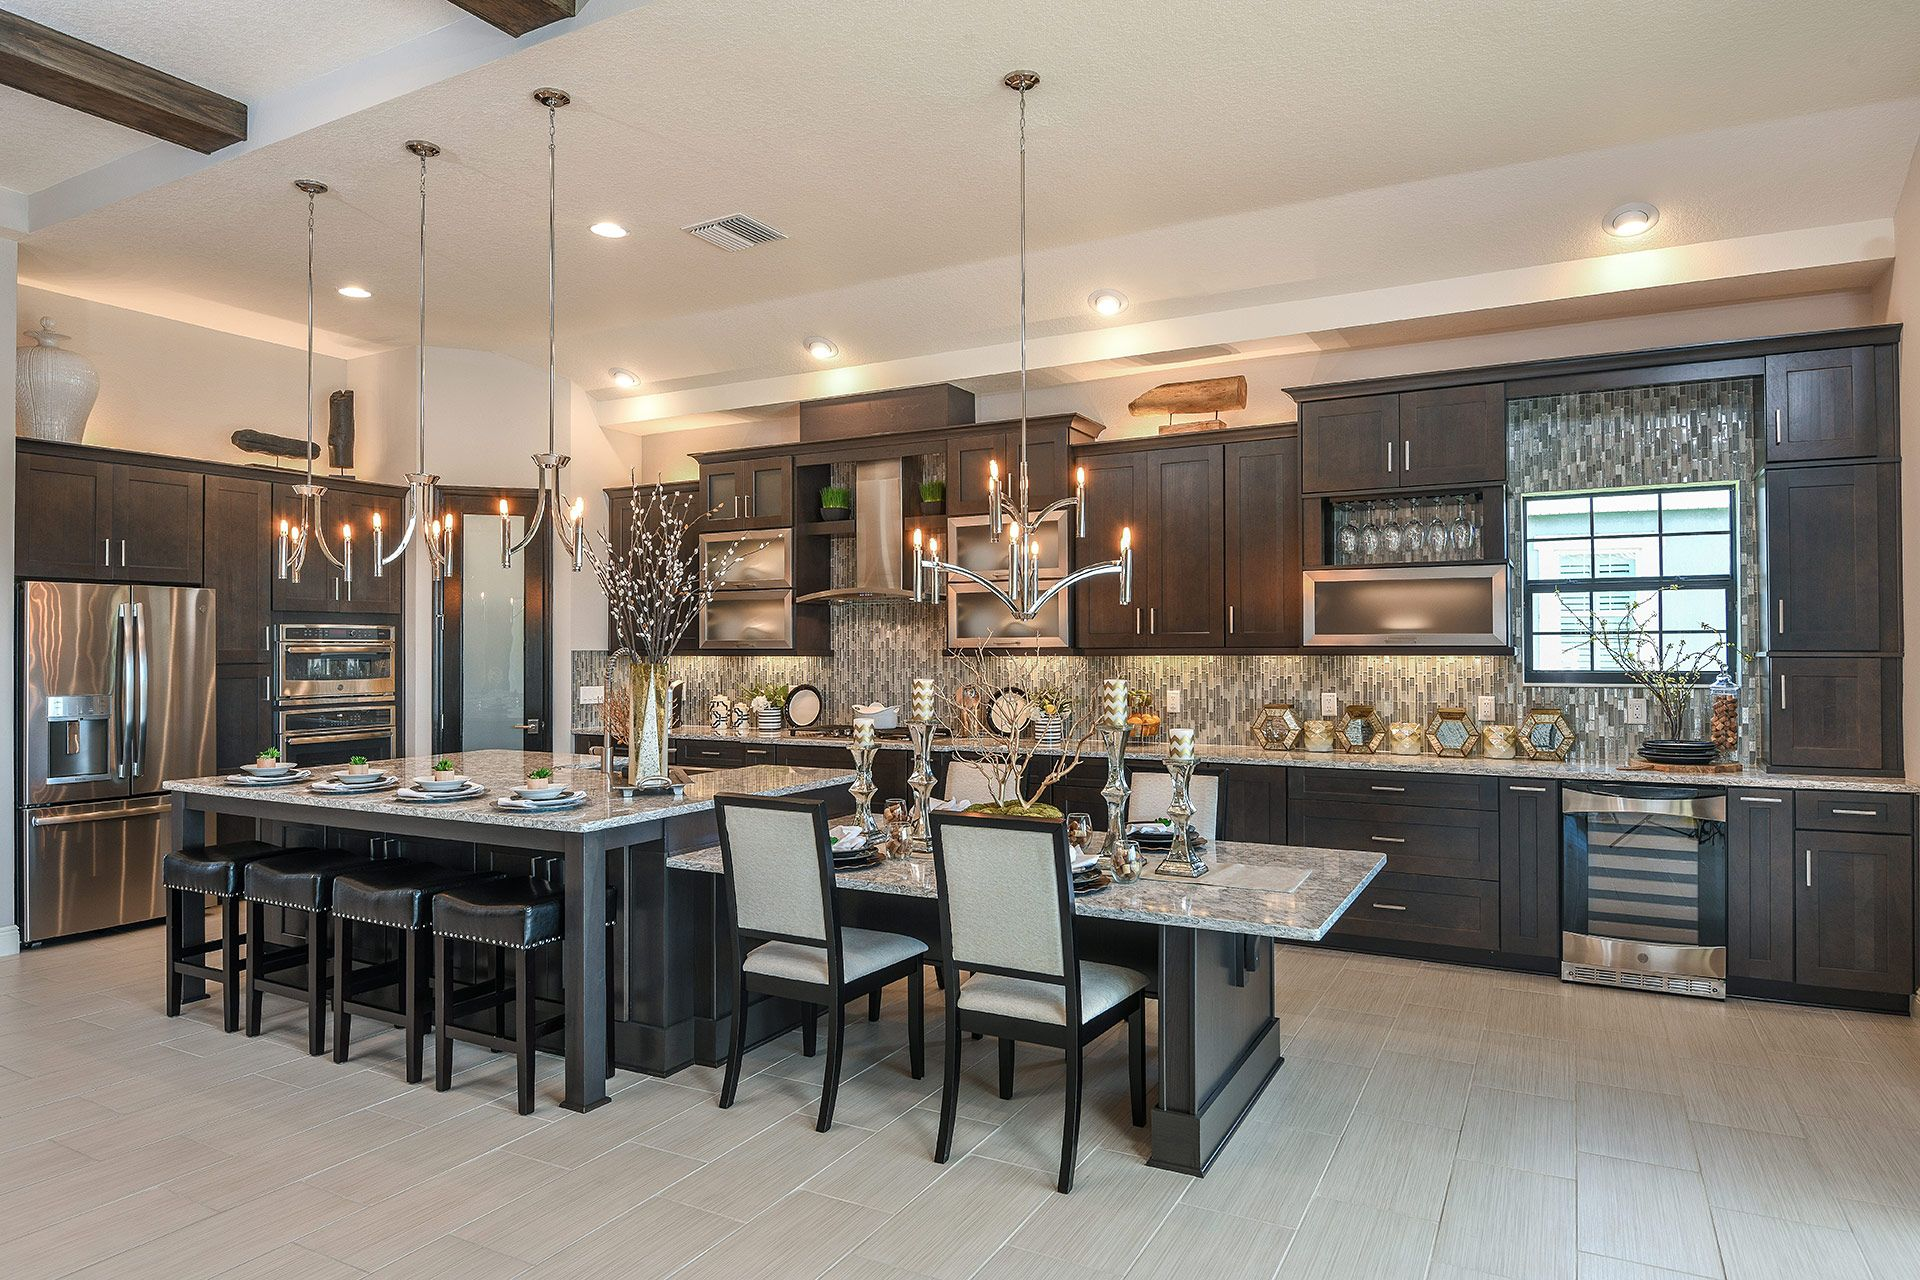 Kitchen featured in the Biscayne II By Homes by WestBay in Tampa-St. Petersburg, FL